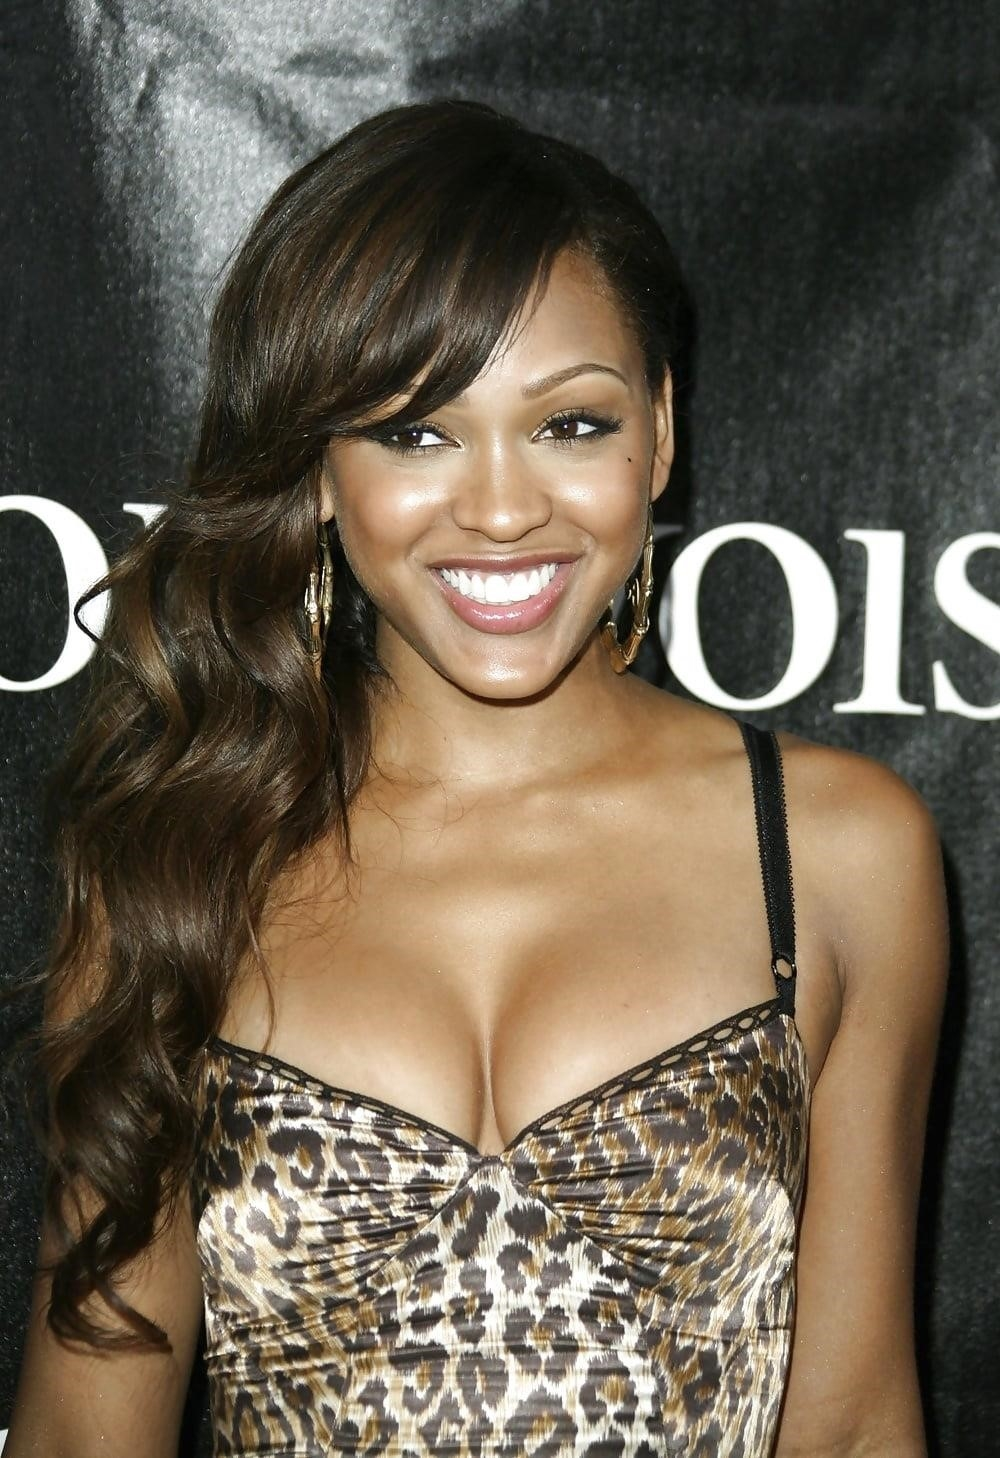 Meagan good nude pictures-7804